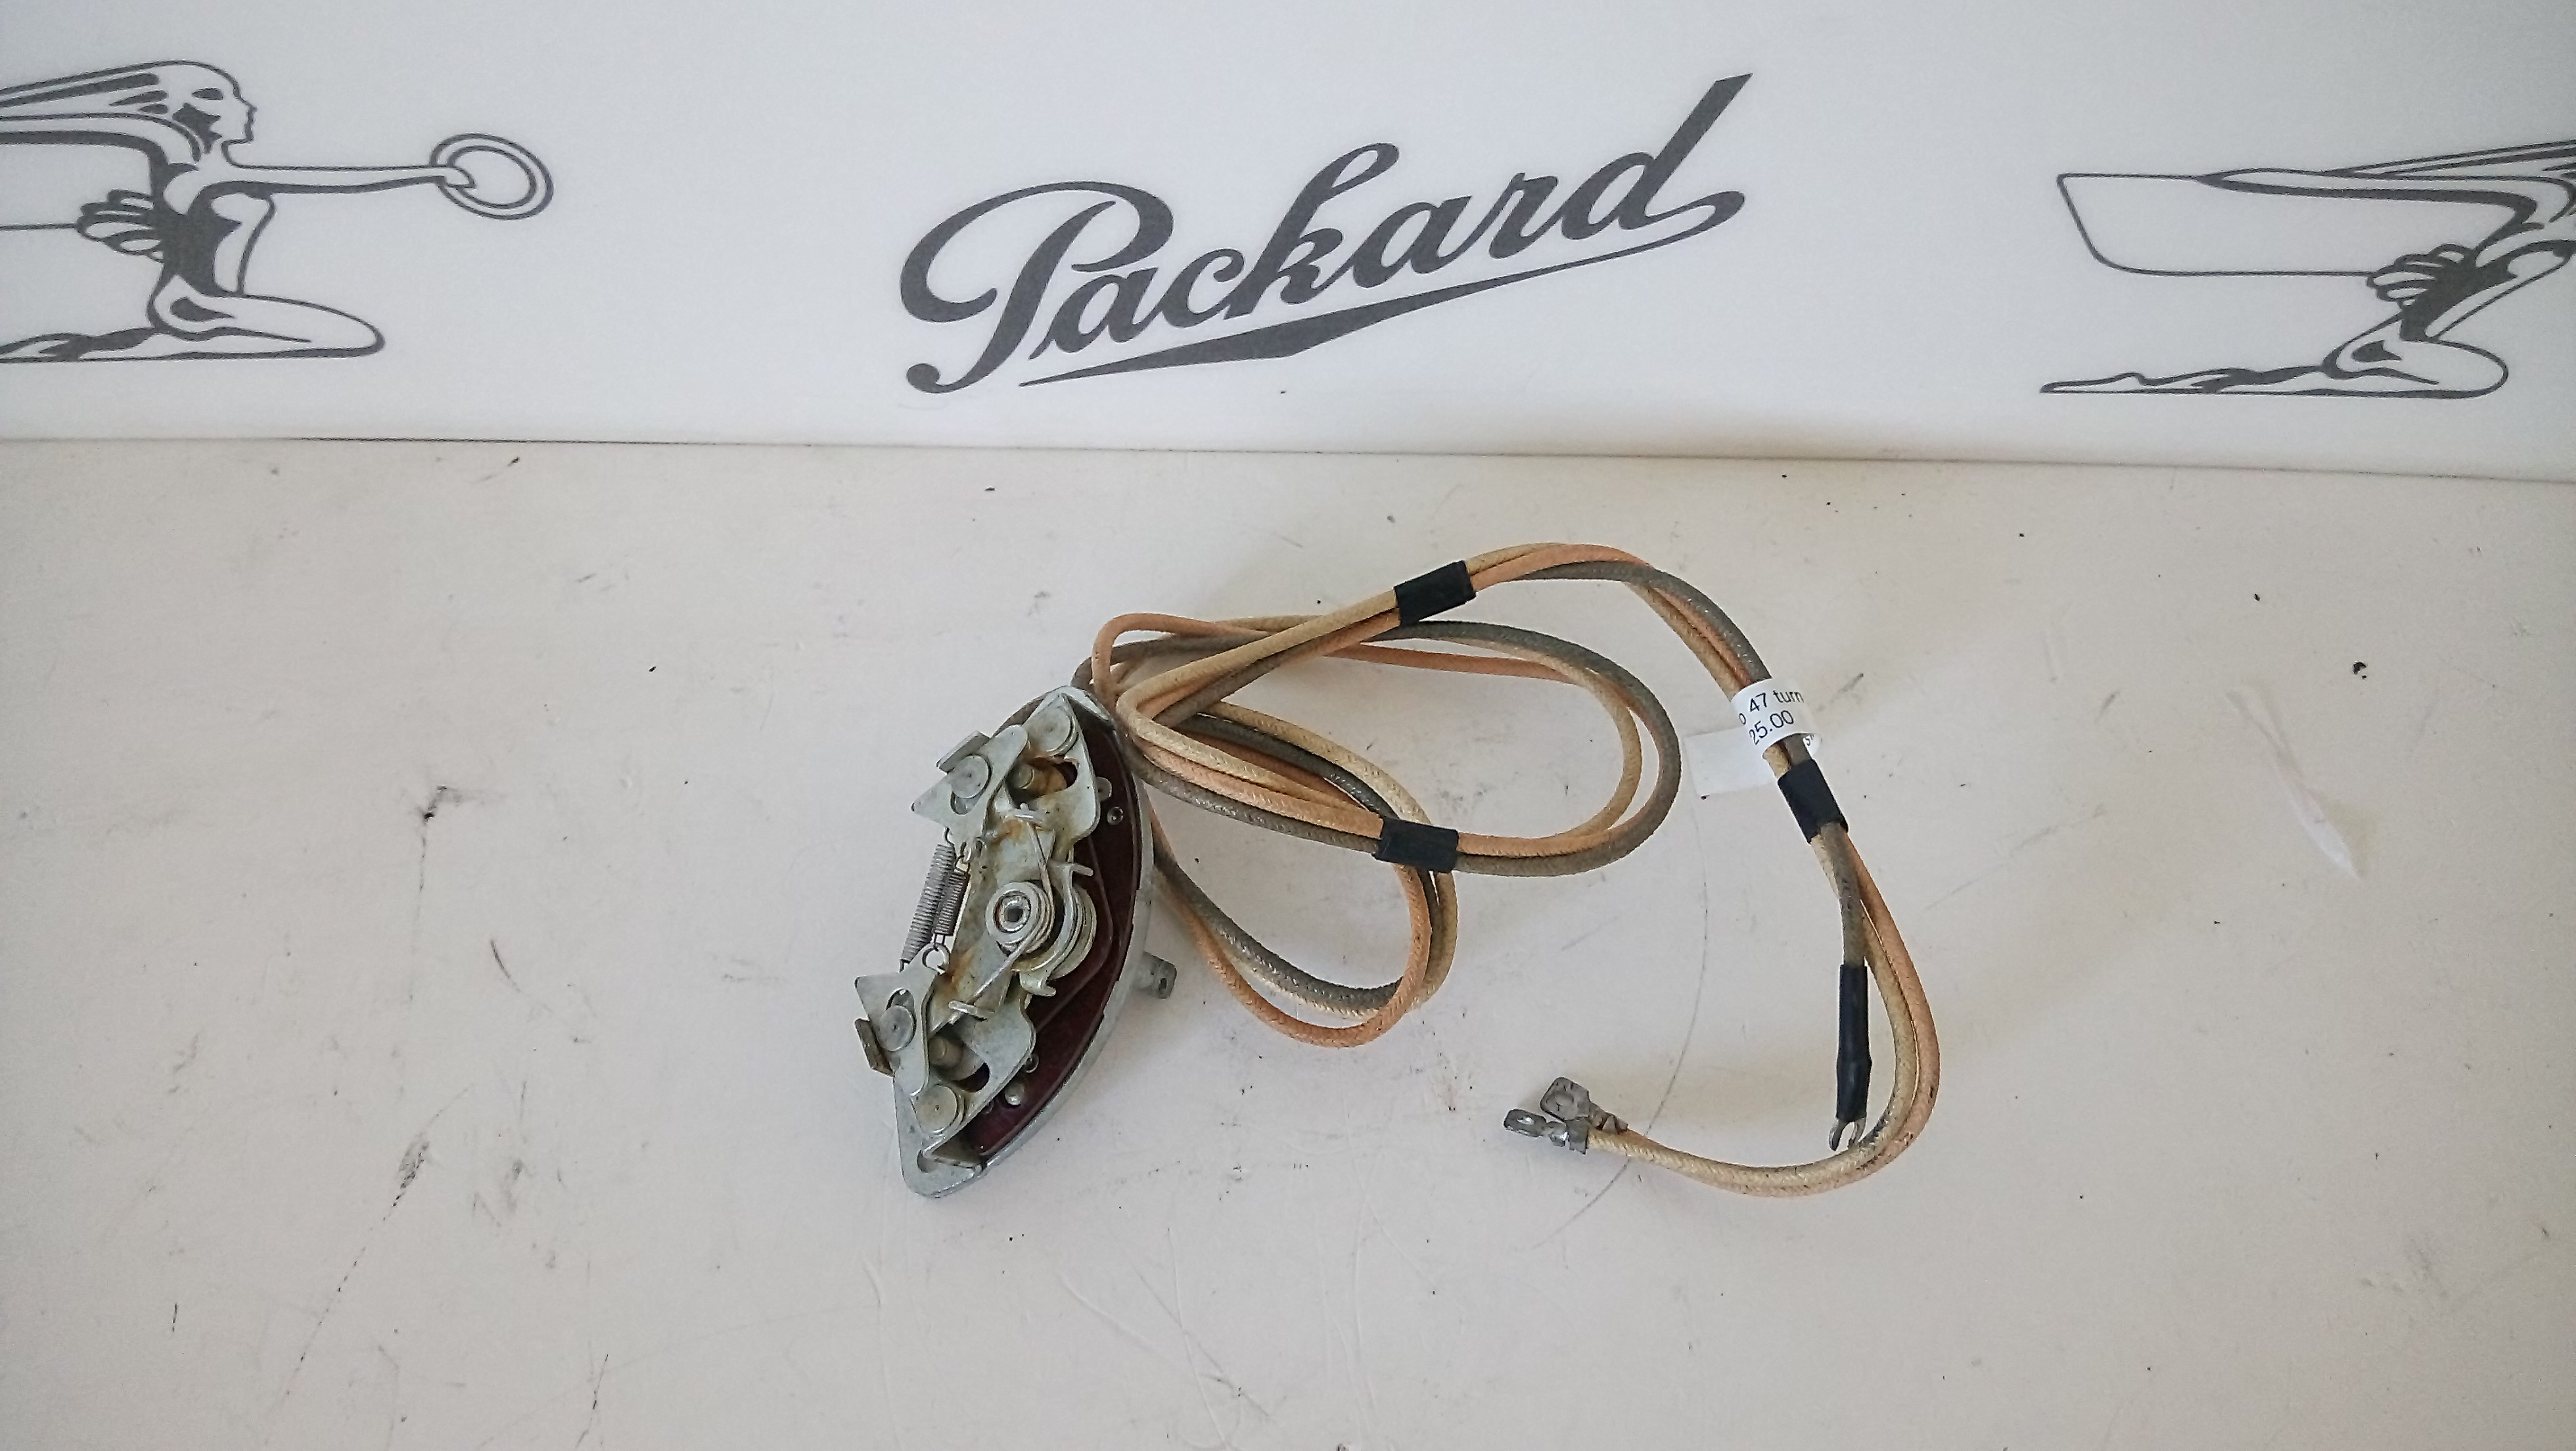 Tucsonpackard Packard Parts. 19411947 Packard Turn Signal Switch Nos. Wiring. 1949 Packard Wiring Diagram For Gas Gauge At Scoala.co